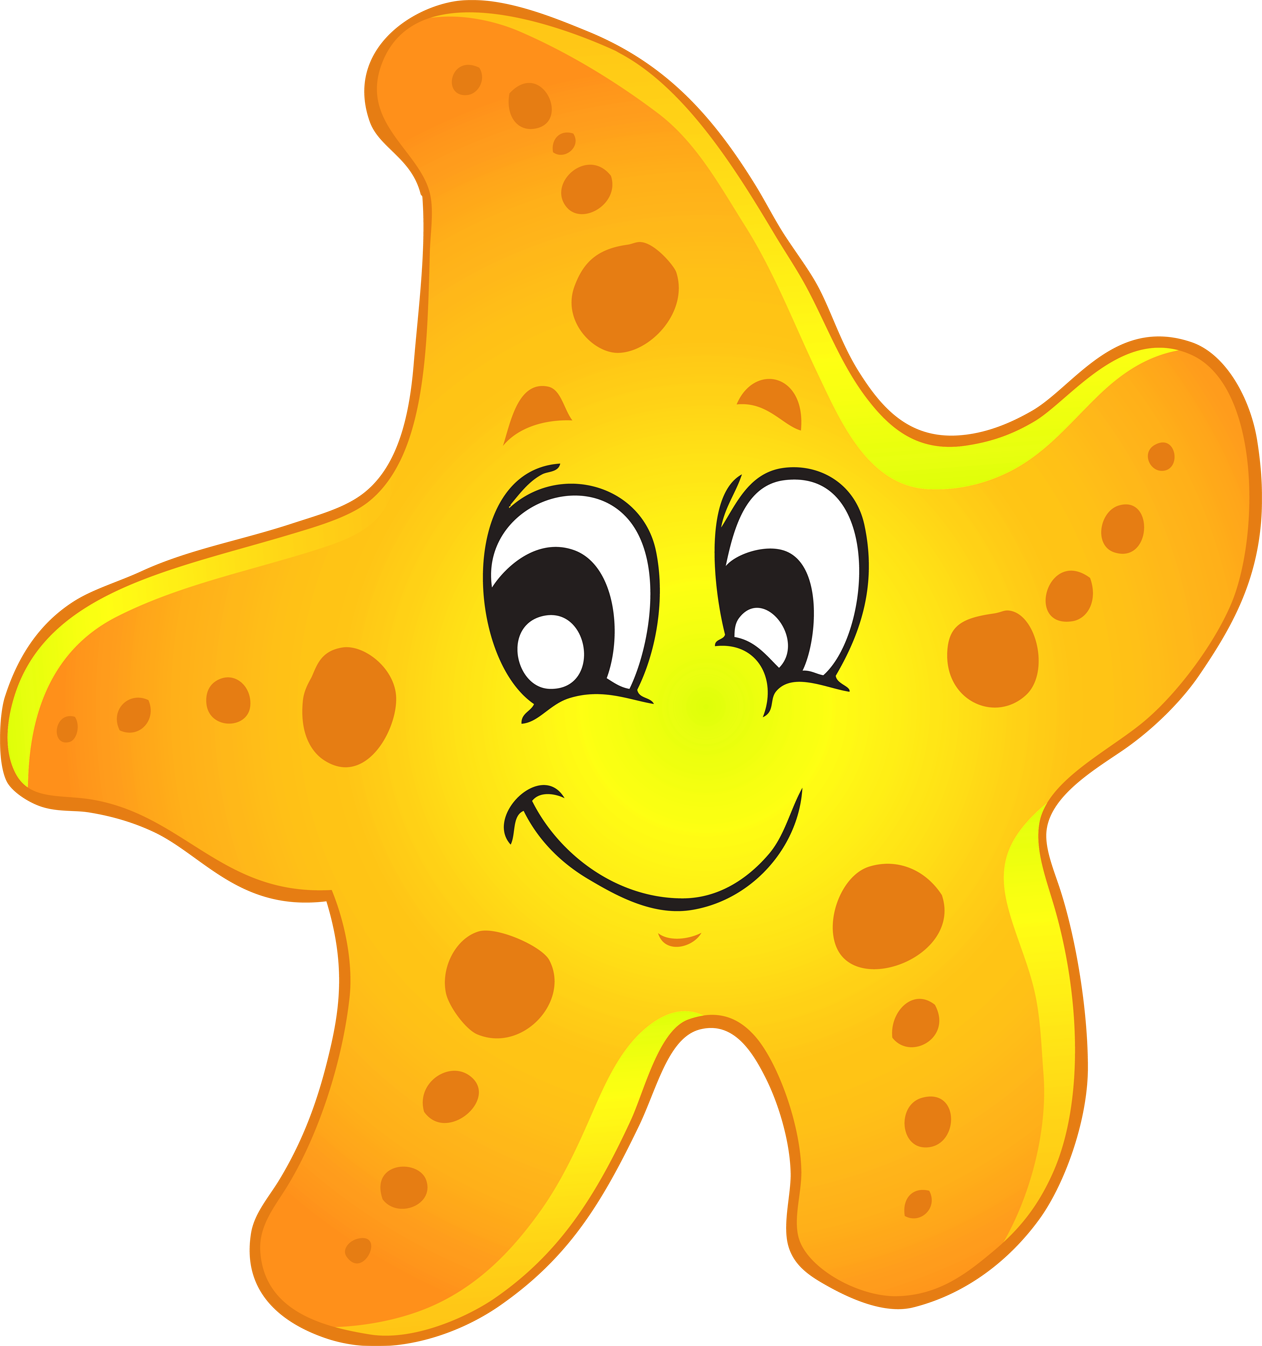 Sea Star Clipart - ClipArt Best